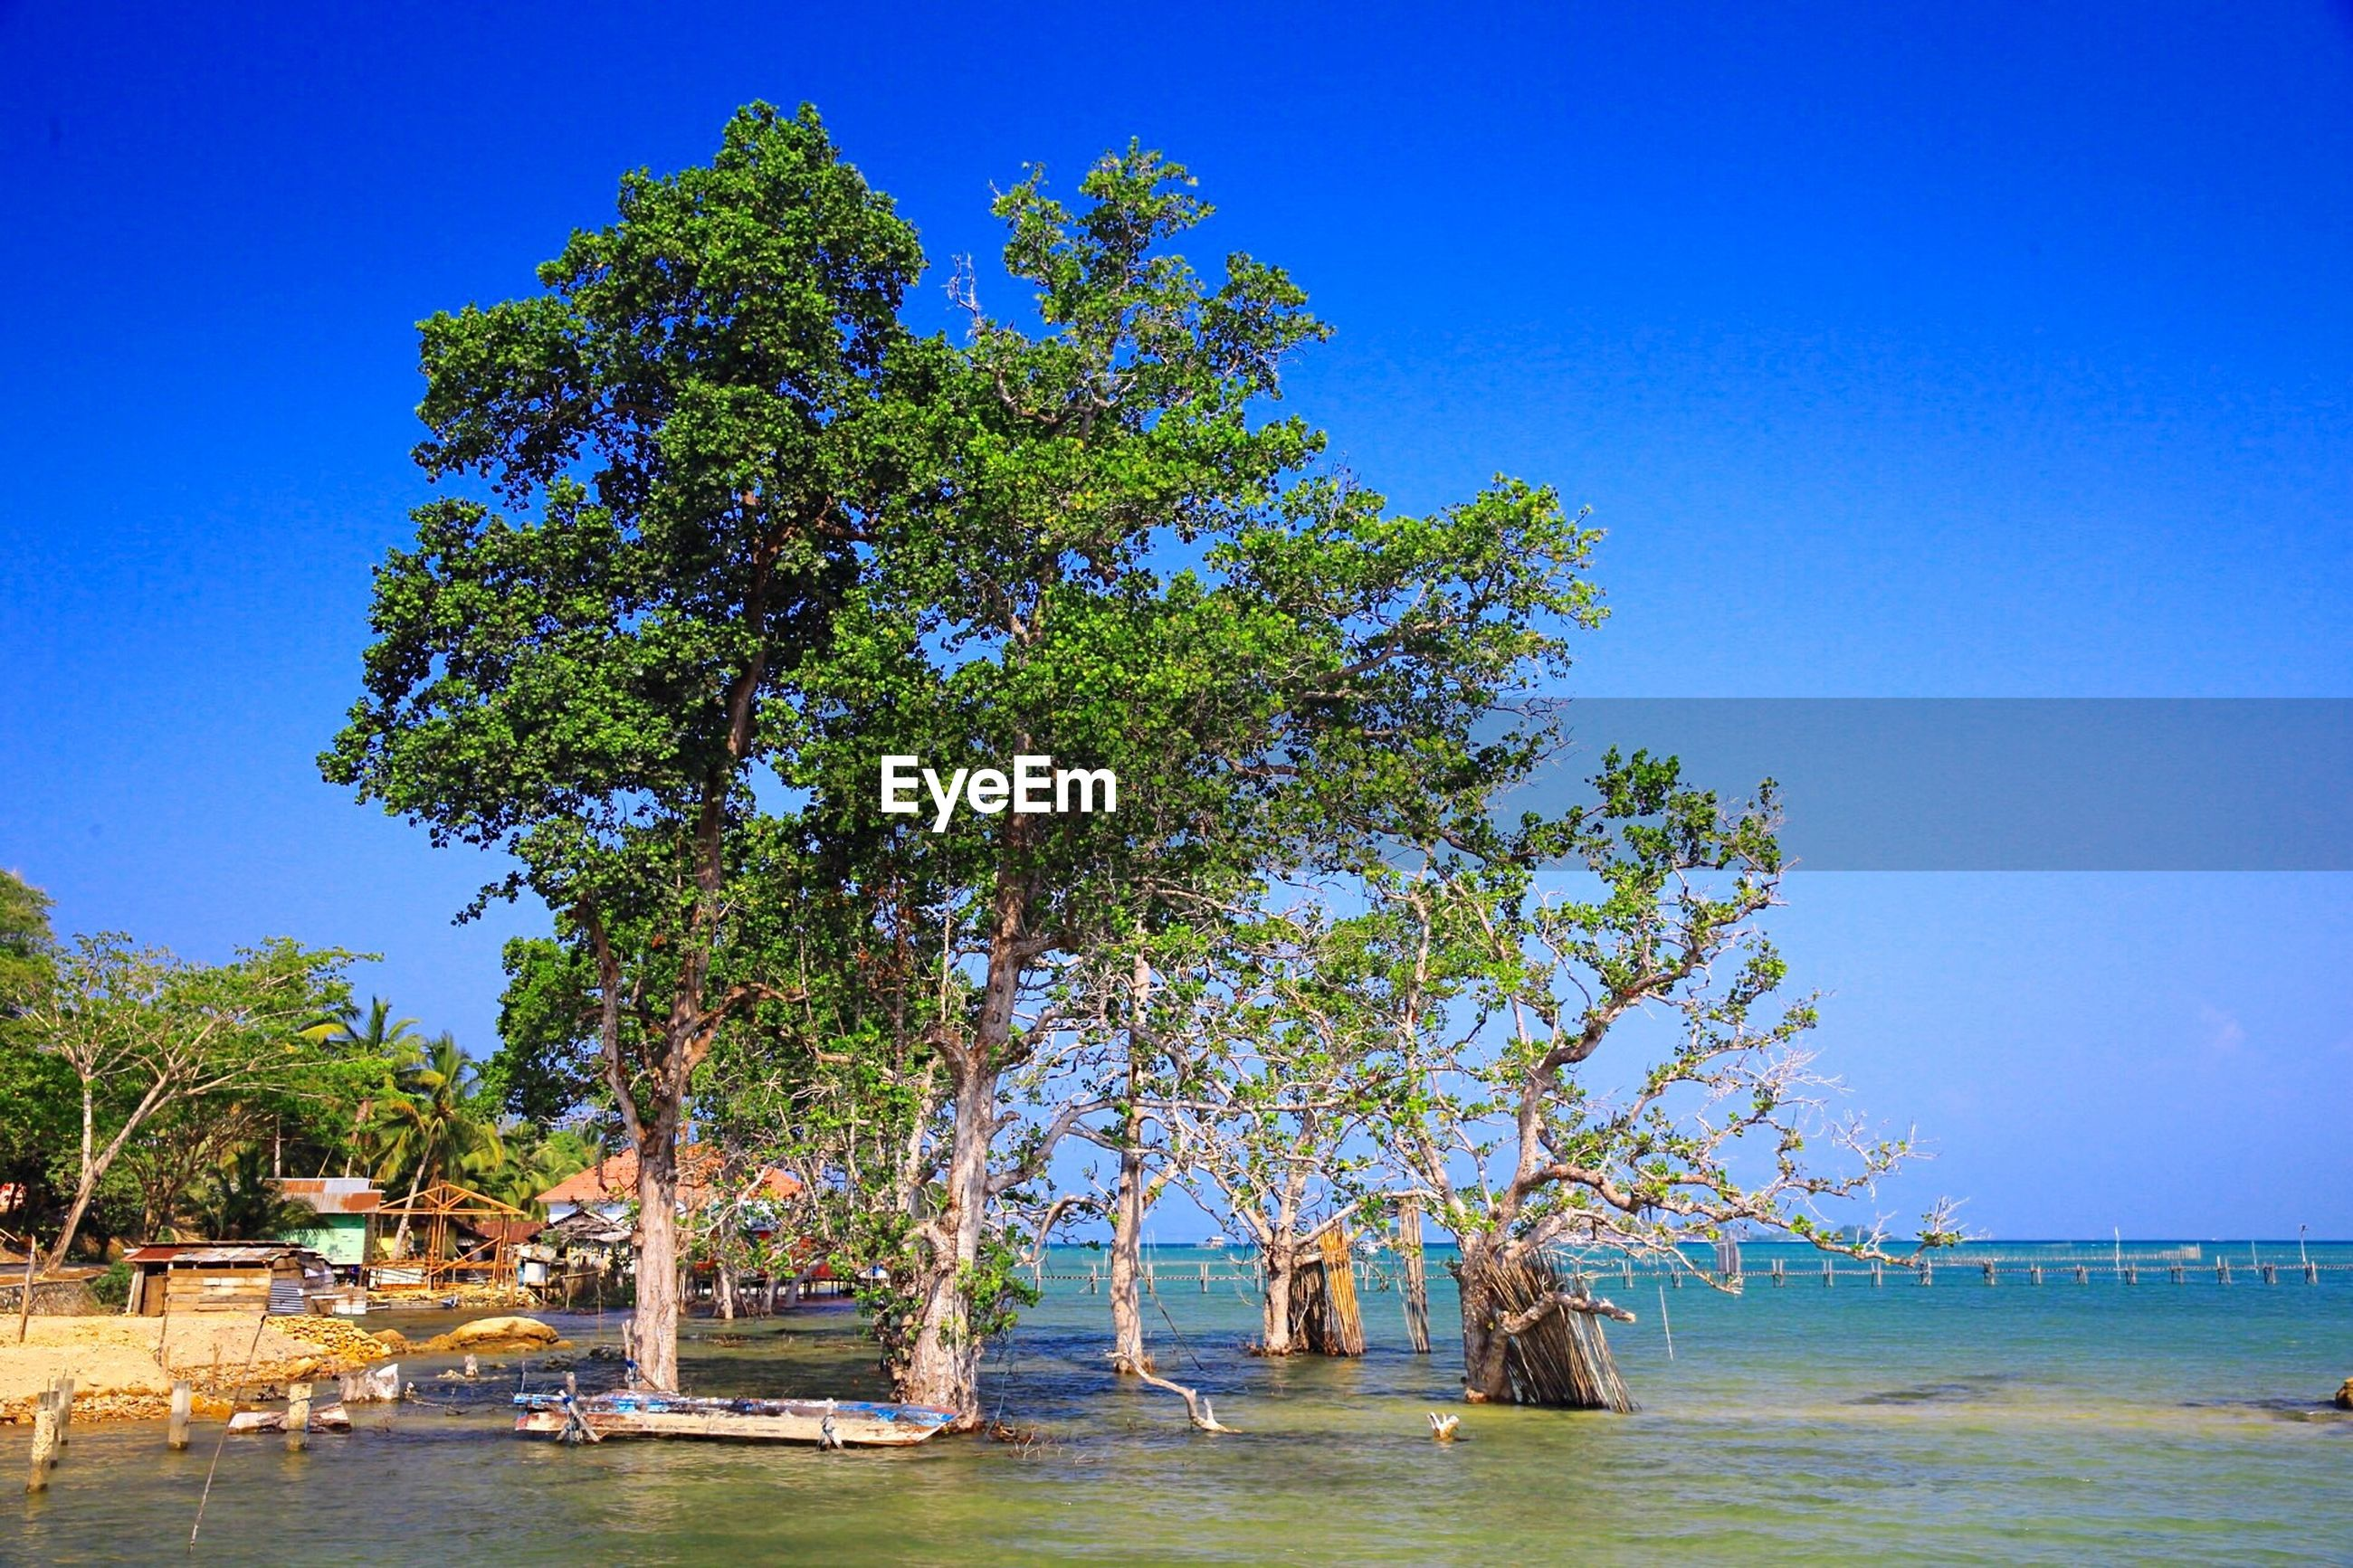 View of trees by calm sea against clear blue sky